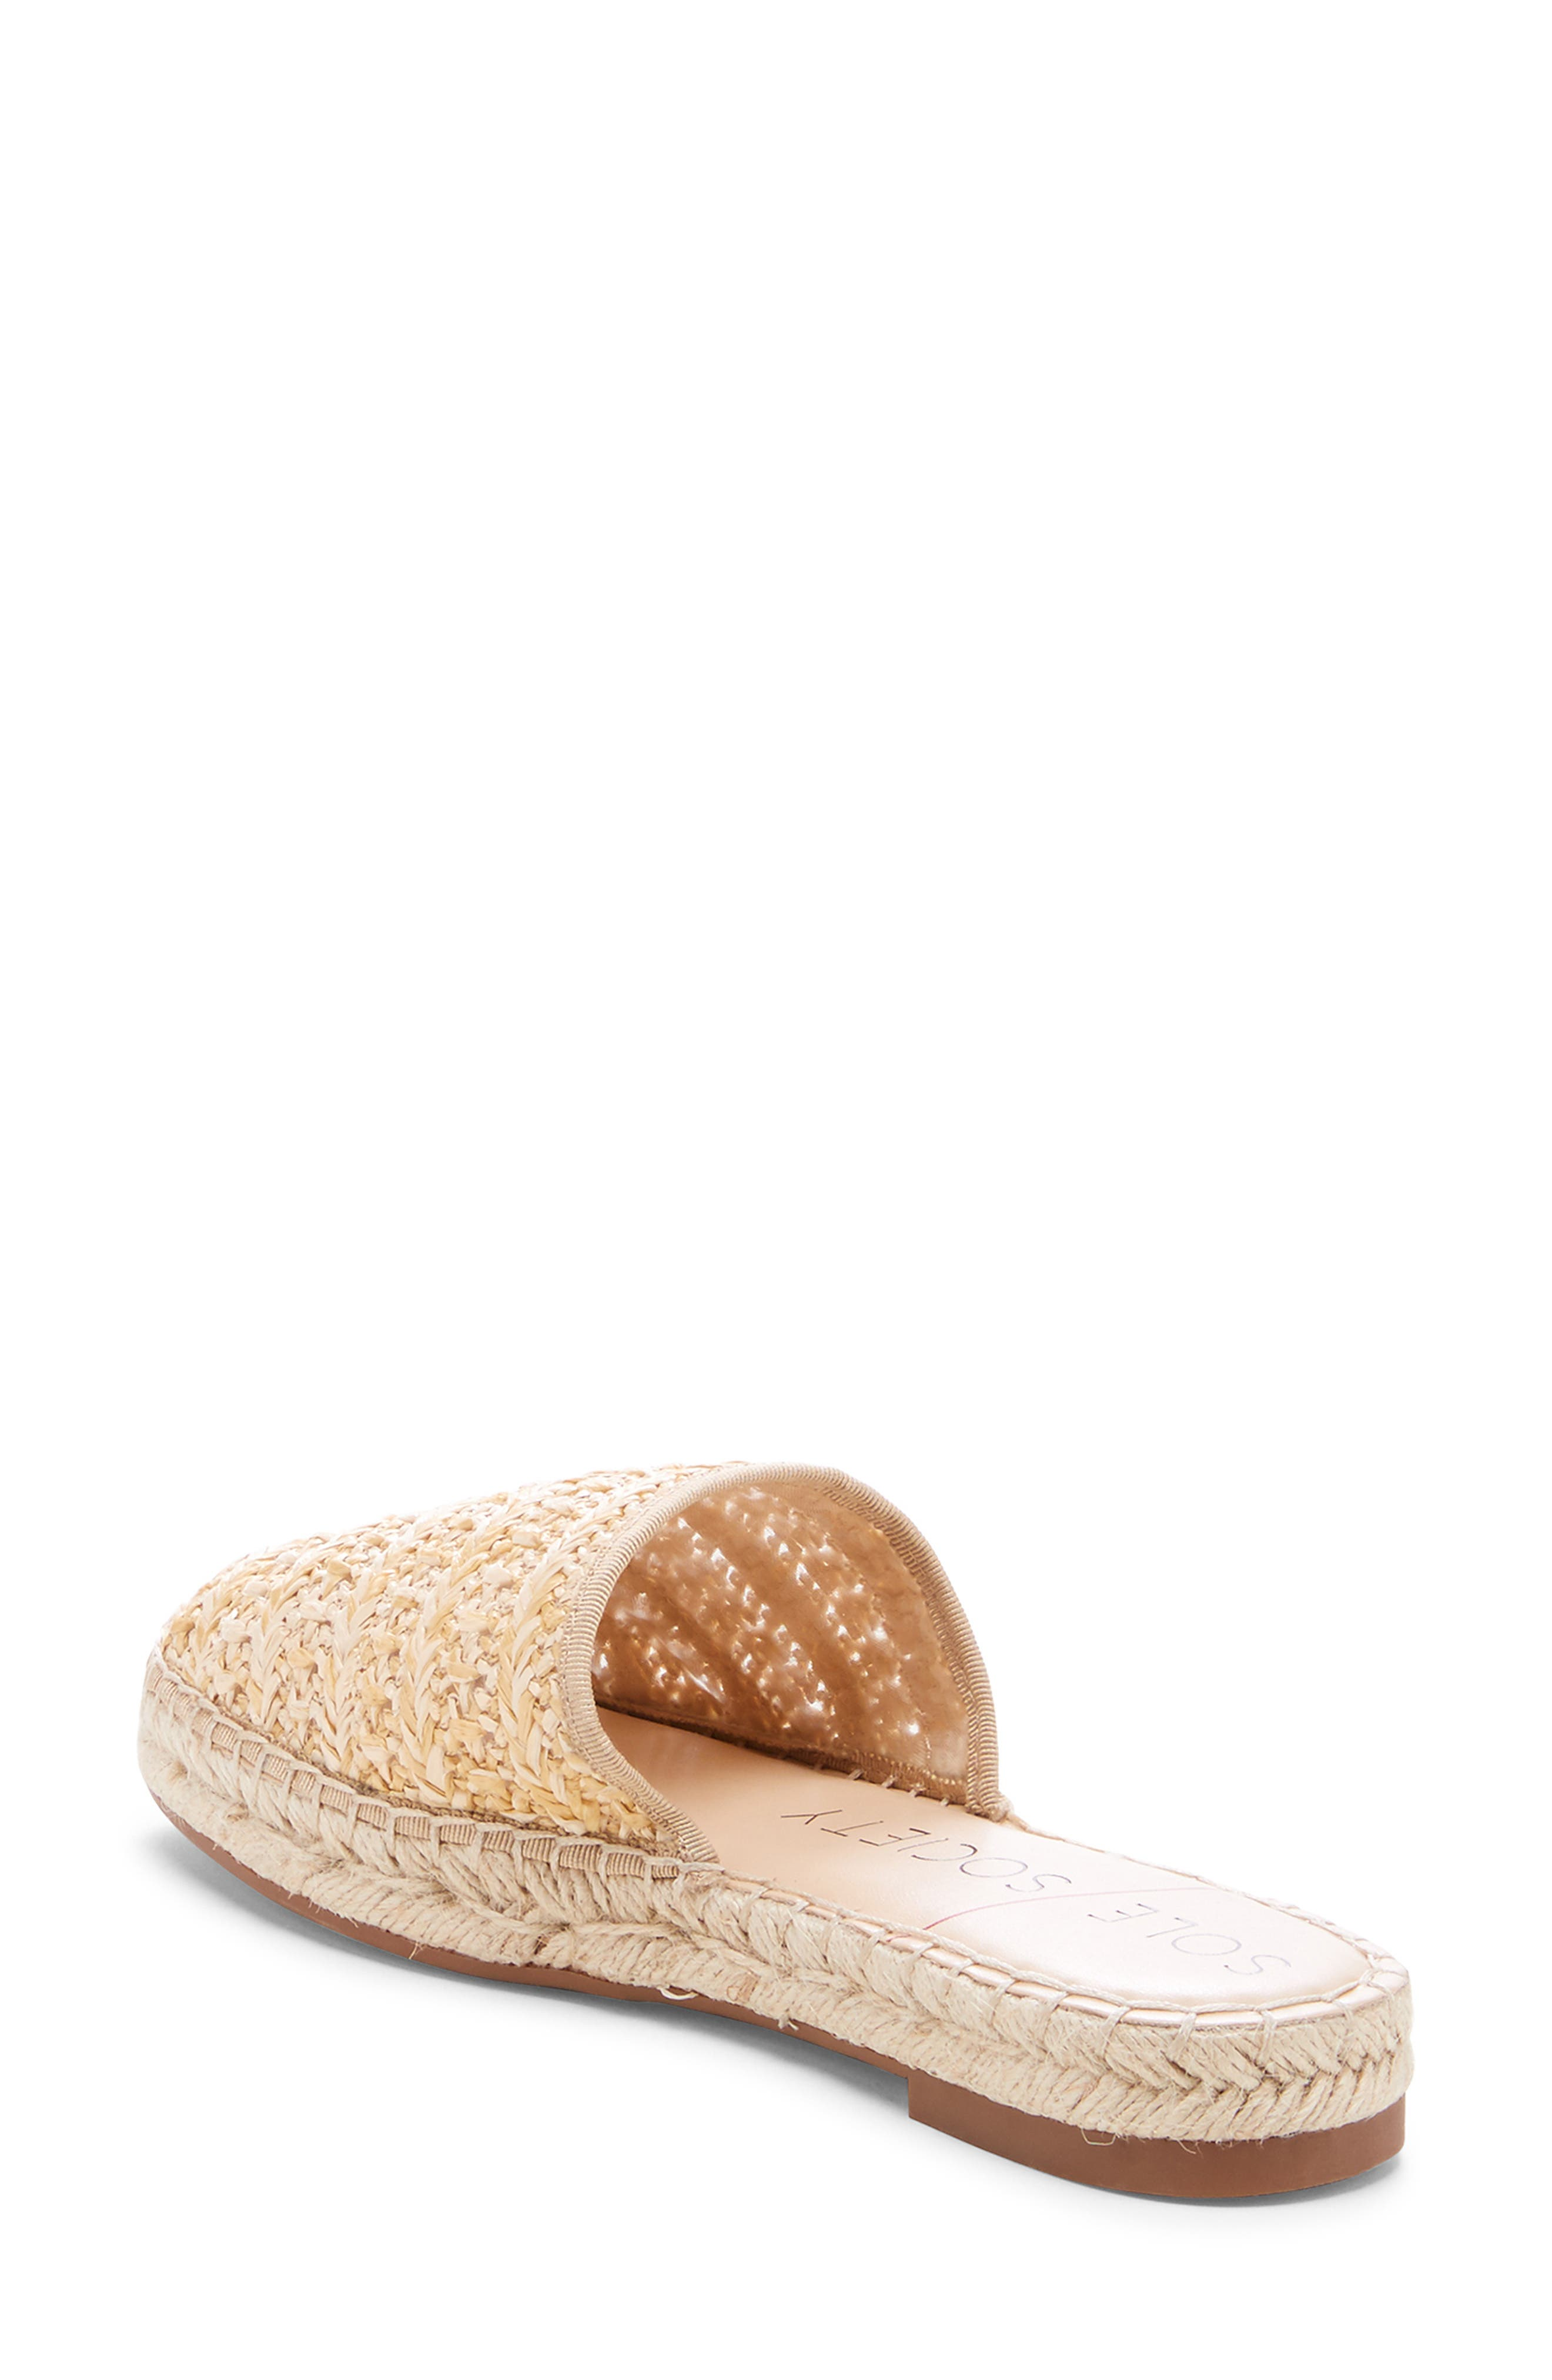 SOLE SOCIETY, Sadelle Espadrille Mule, Alternate thumbnail 2, color, NATURAL FABRIC